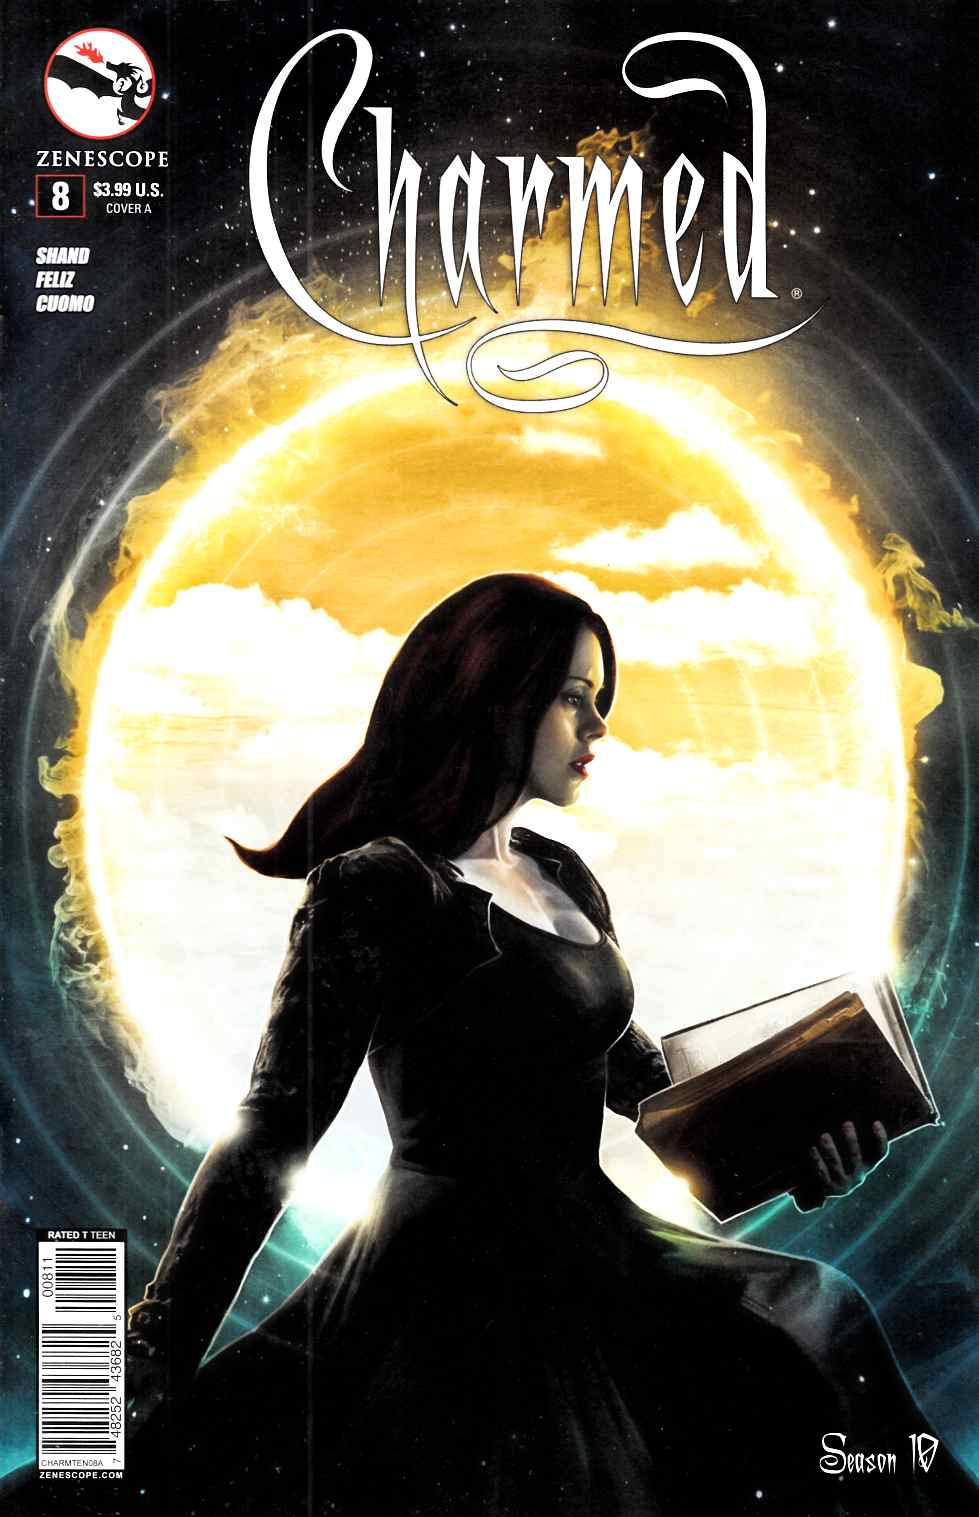 Charmed Season 10 #8 Cover A- Cuomo [Zenescope Comic] THUMBNAIL